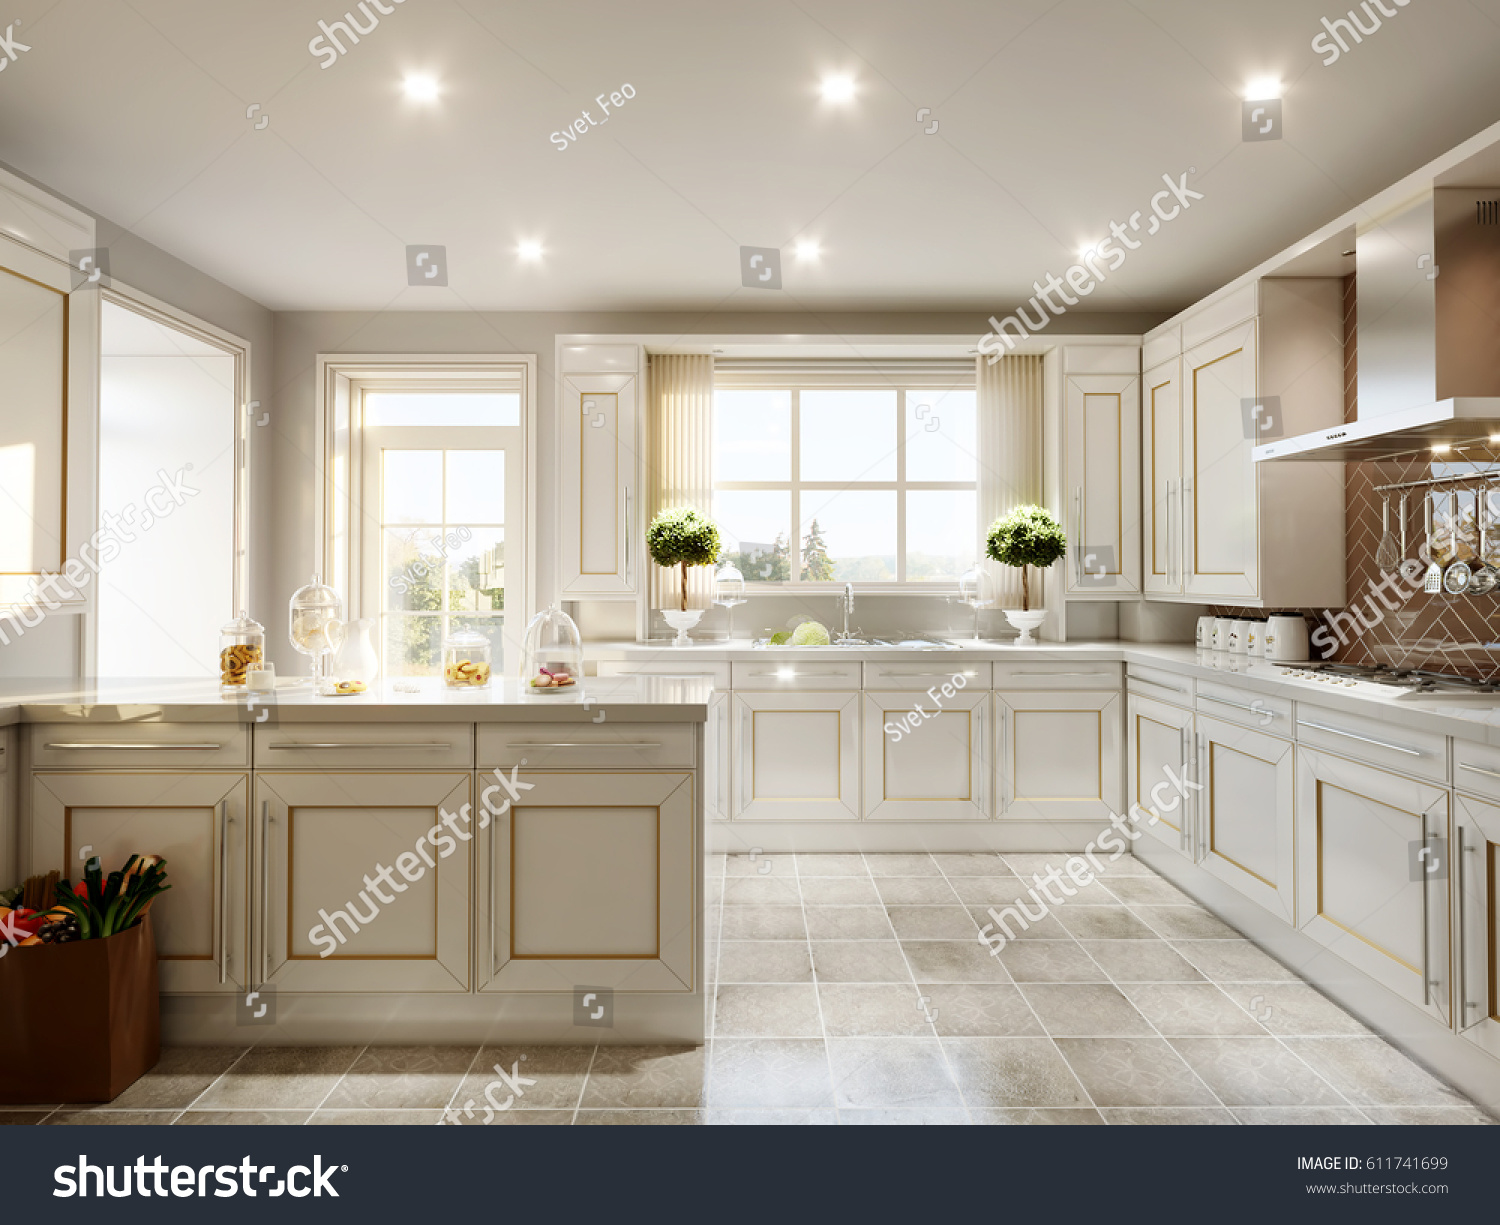 Modern english classic style kitchen interior stock for Modern english interior design